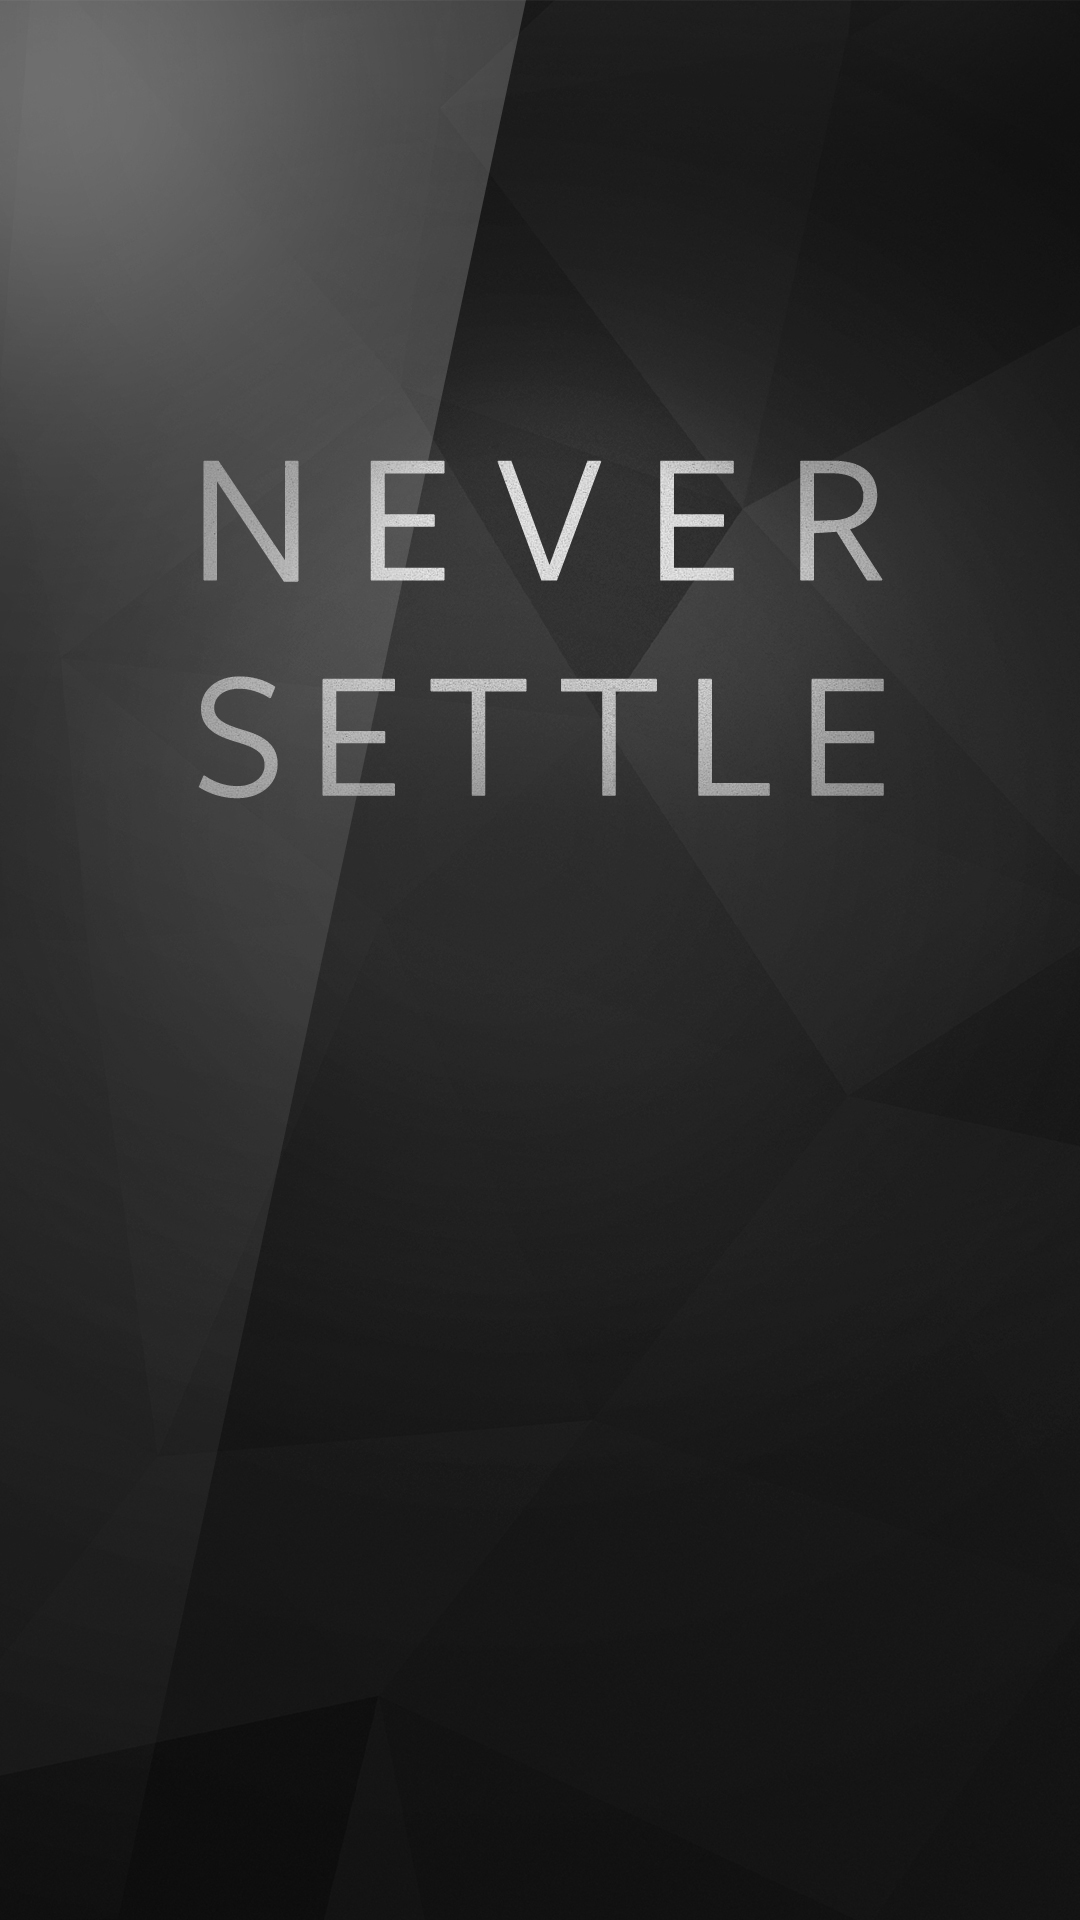 Wallpapers Oneplus One Official Wallpapers Pg 2